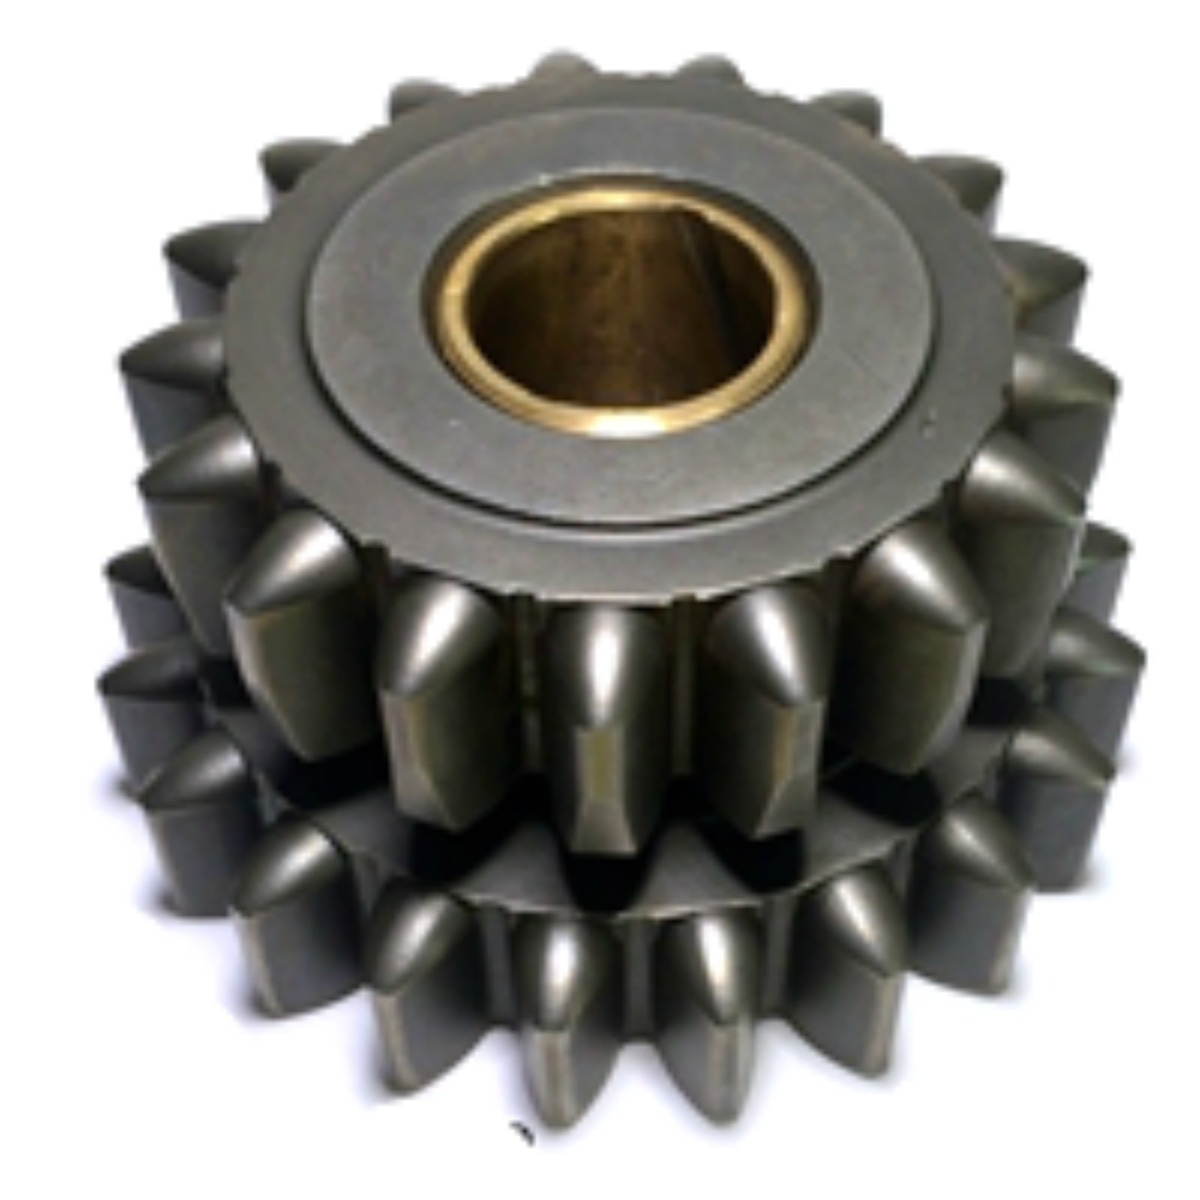 NP435 Reverse Idler Gear - Bushing Type, 21 Tooth